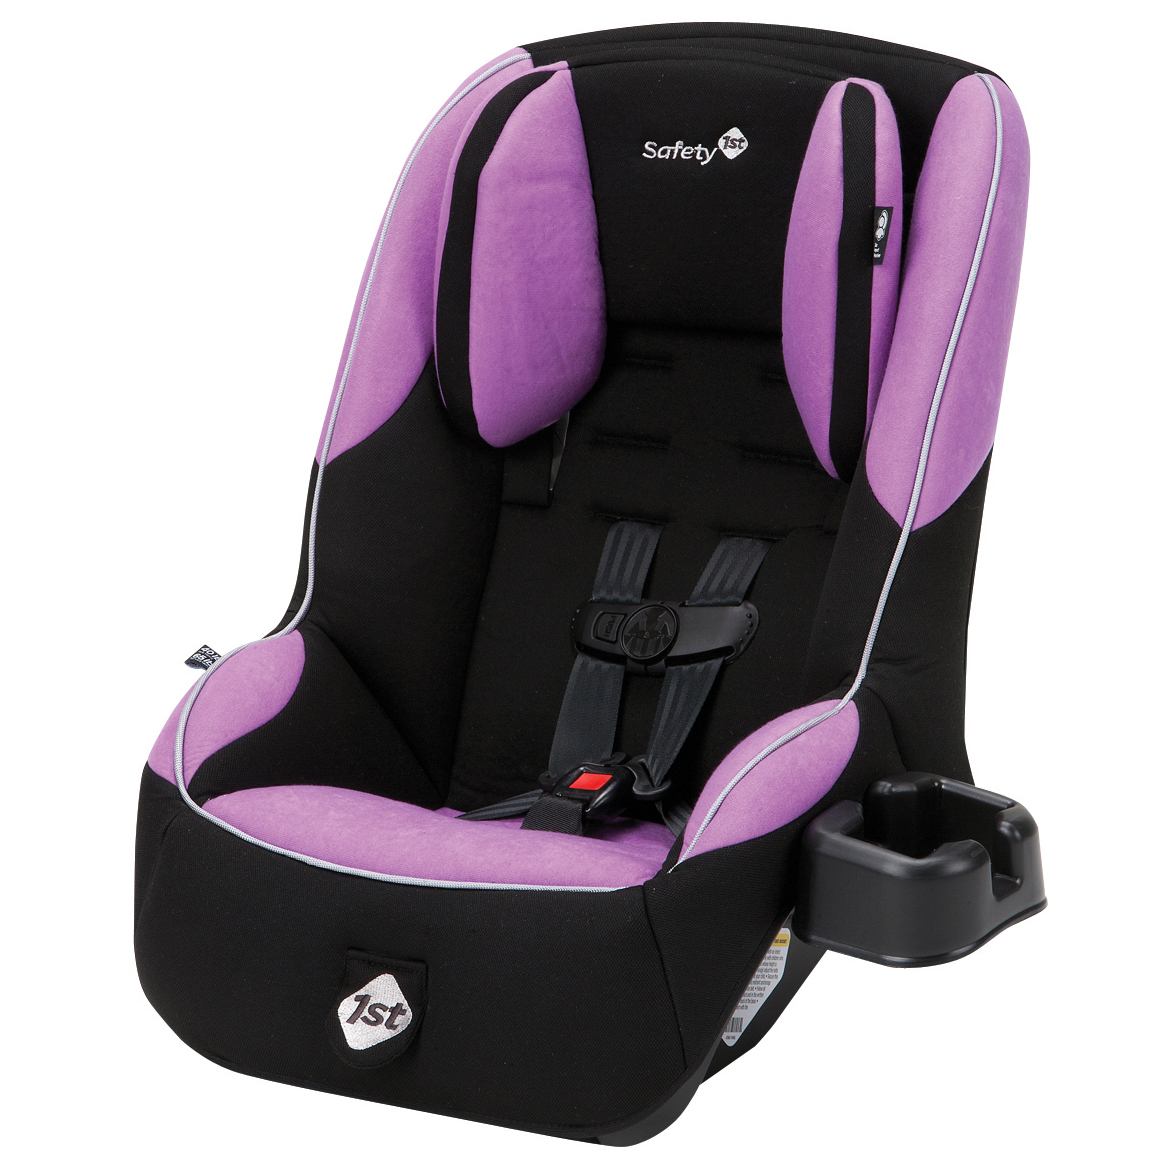 Safety 1st Guide 65 Sport Convertible Car Seat, Lavender Love